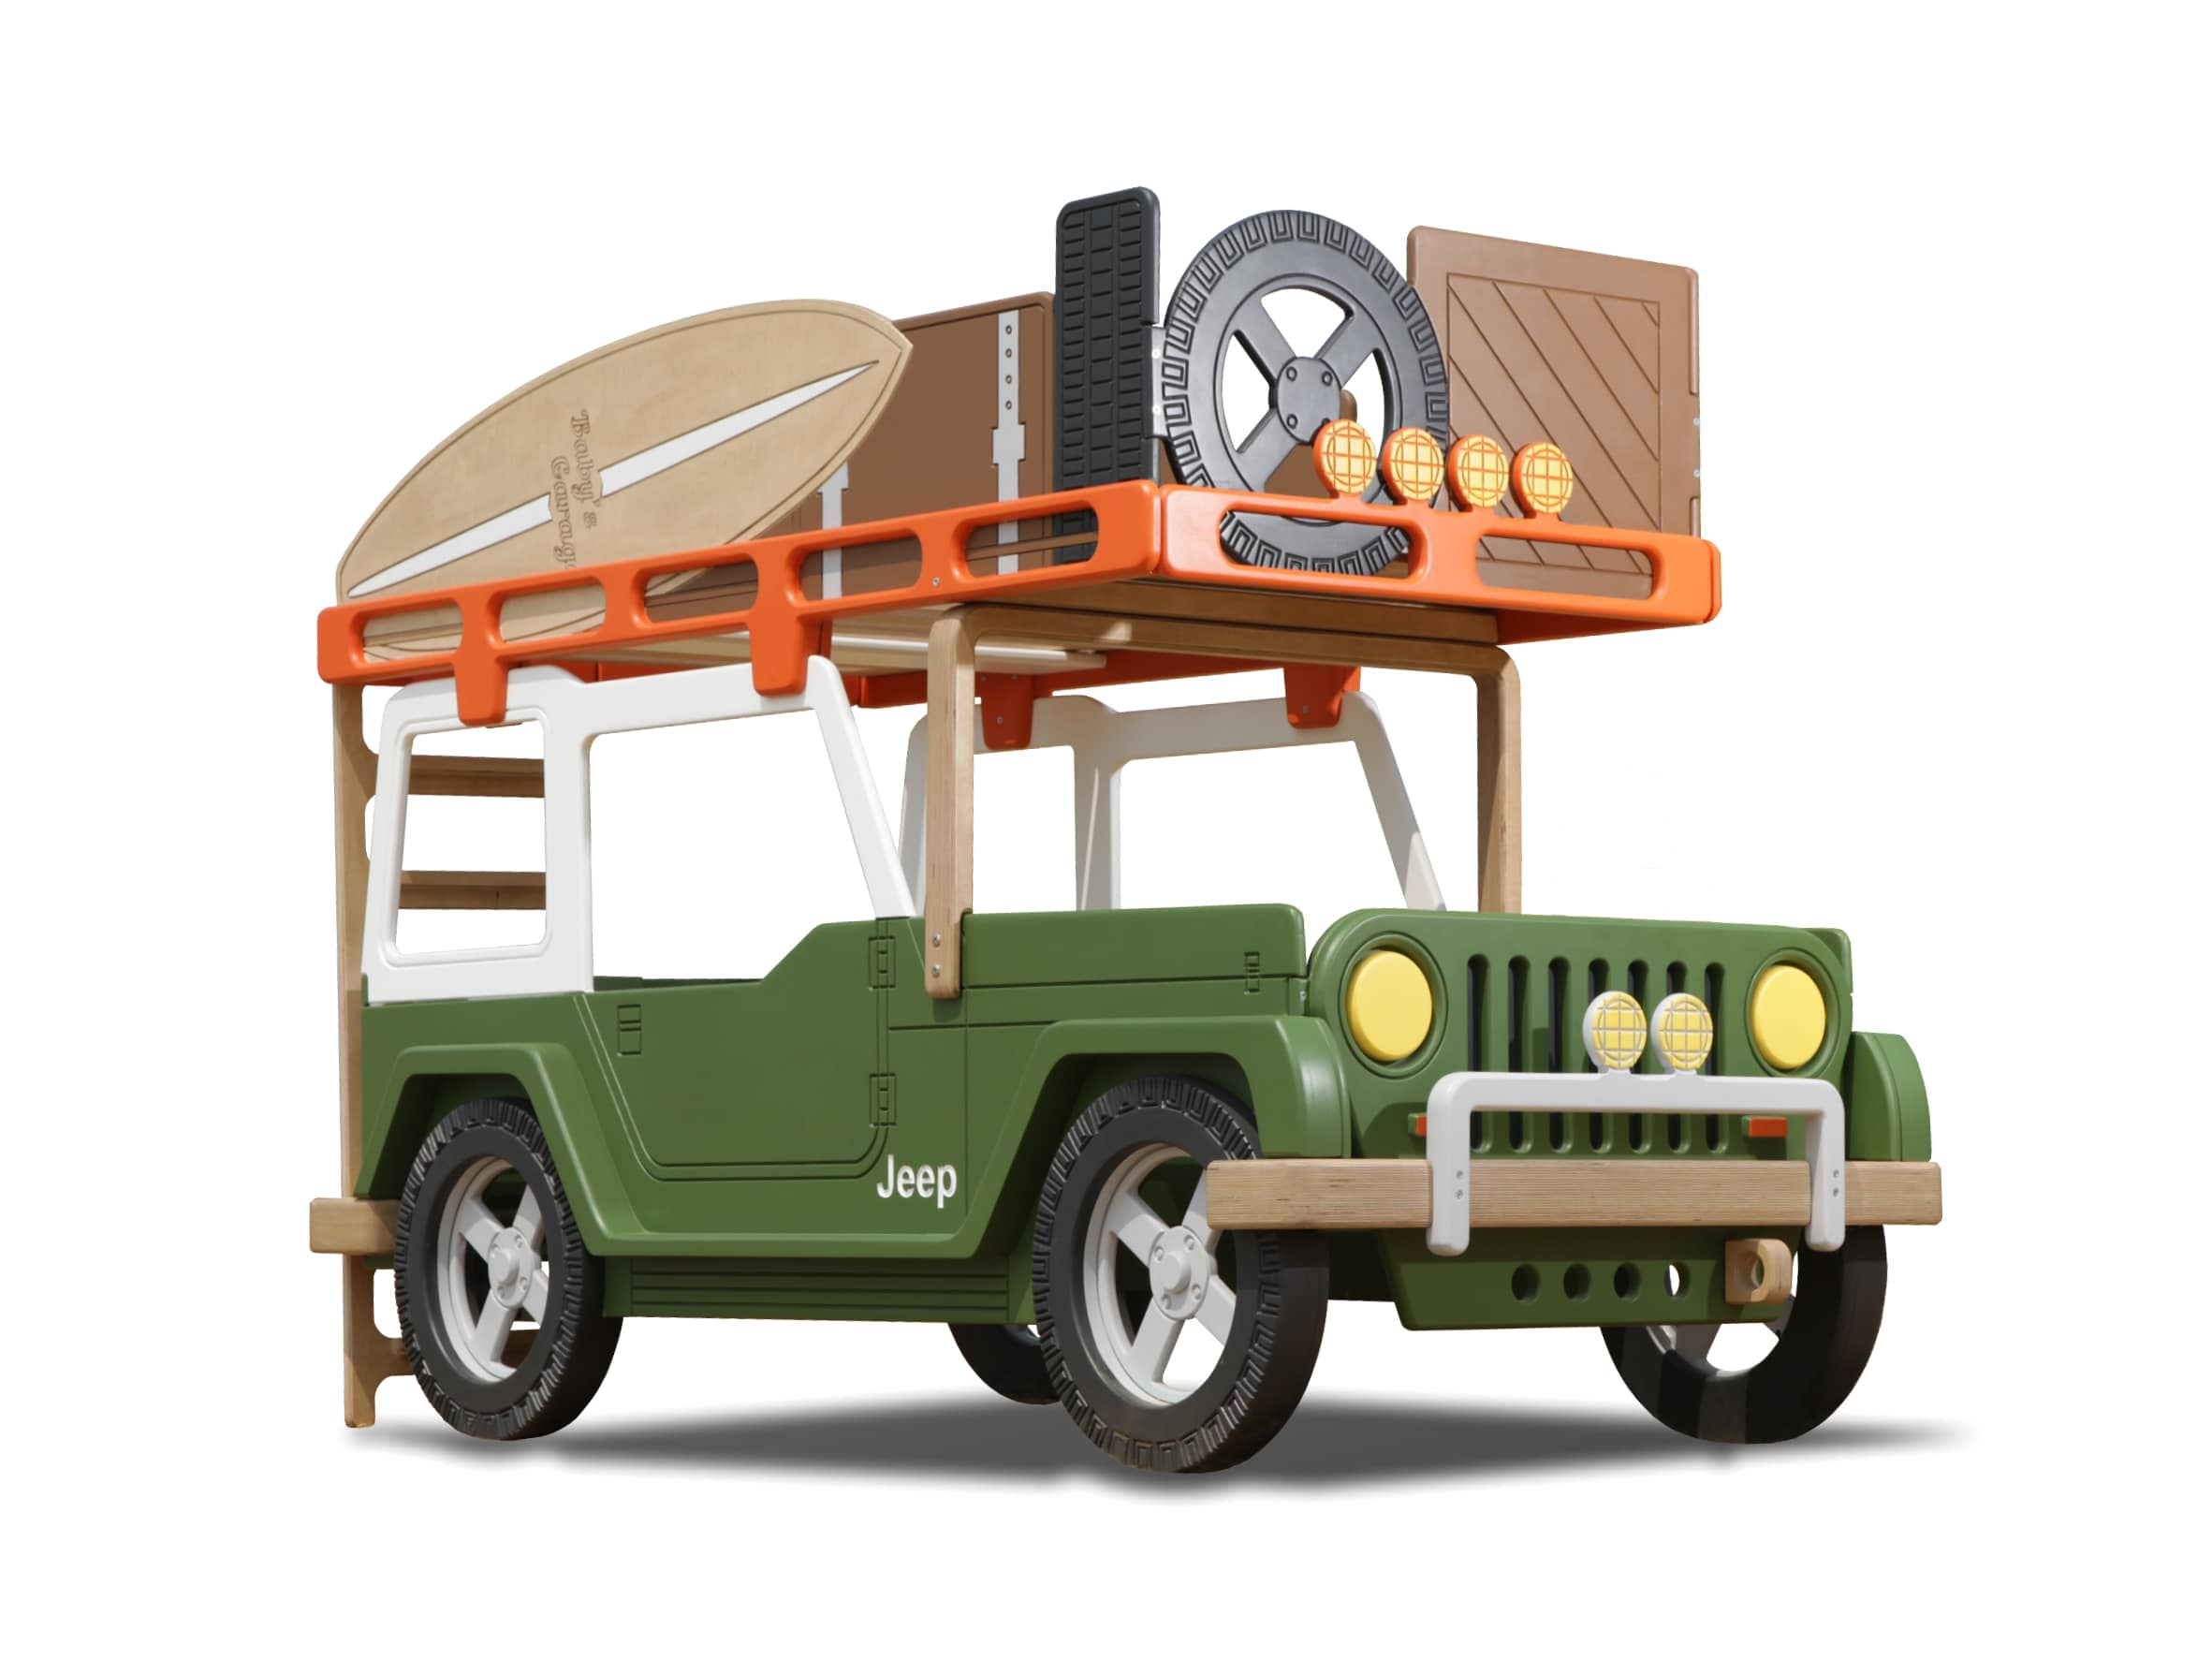 Bunk bed in the form of the Jeep with the top trunk